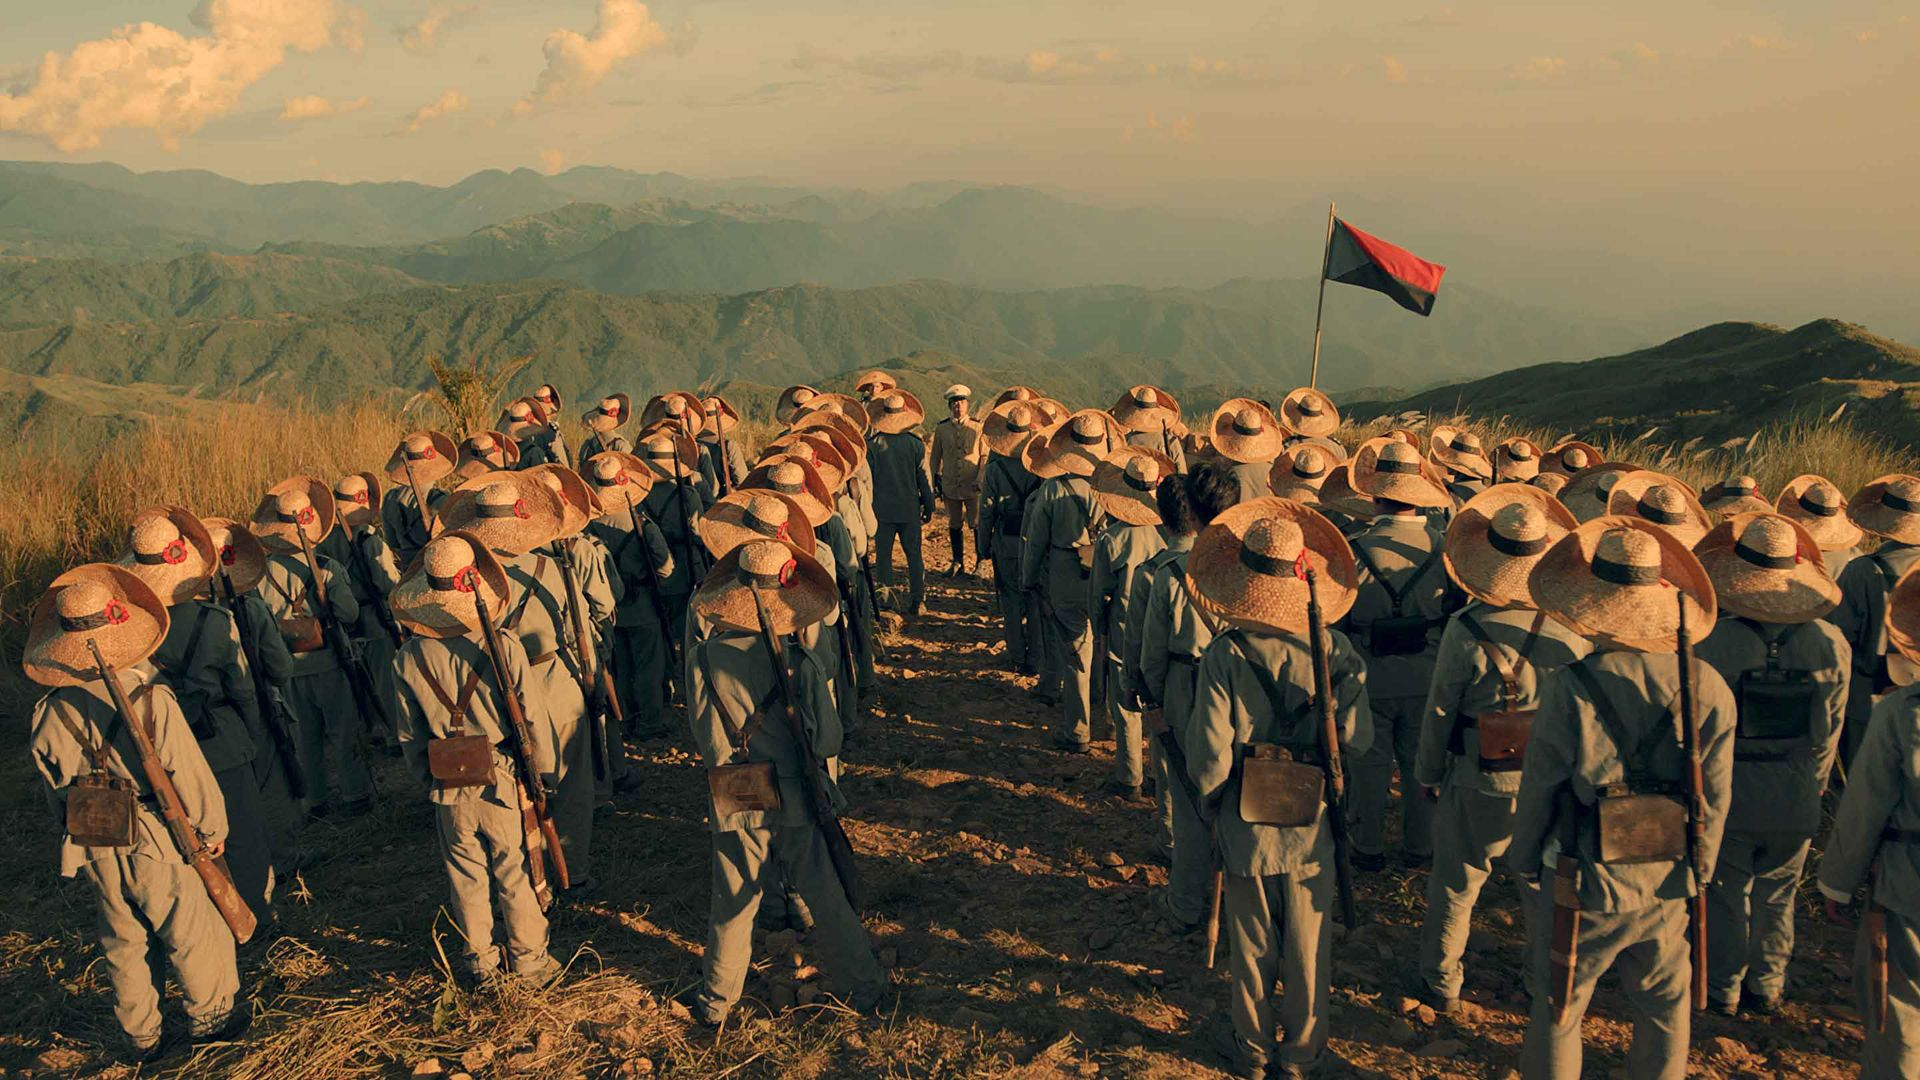 An Examination Of The Filipino Conscience Through Goyo: Ang Batang Heneral